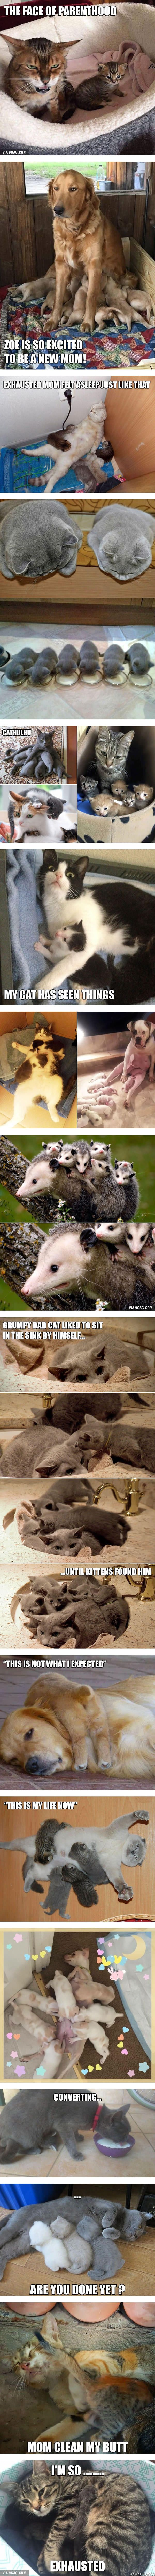 We've All been there. - Animal Expressions That Perfectly Sum Up What It's Like To Be A Parent